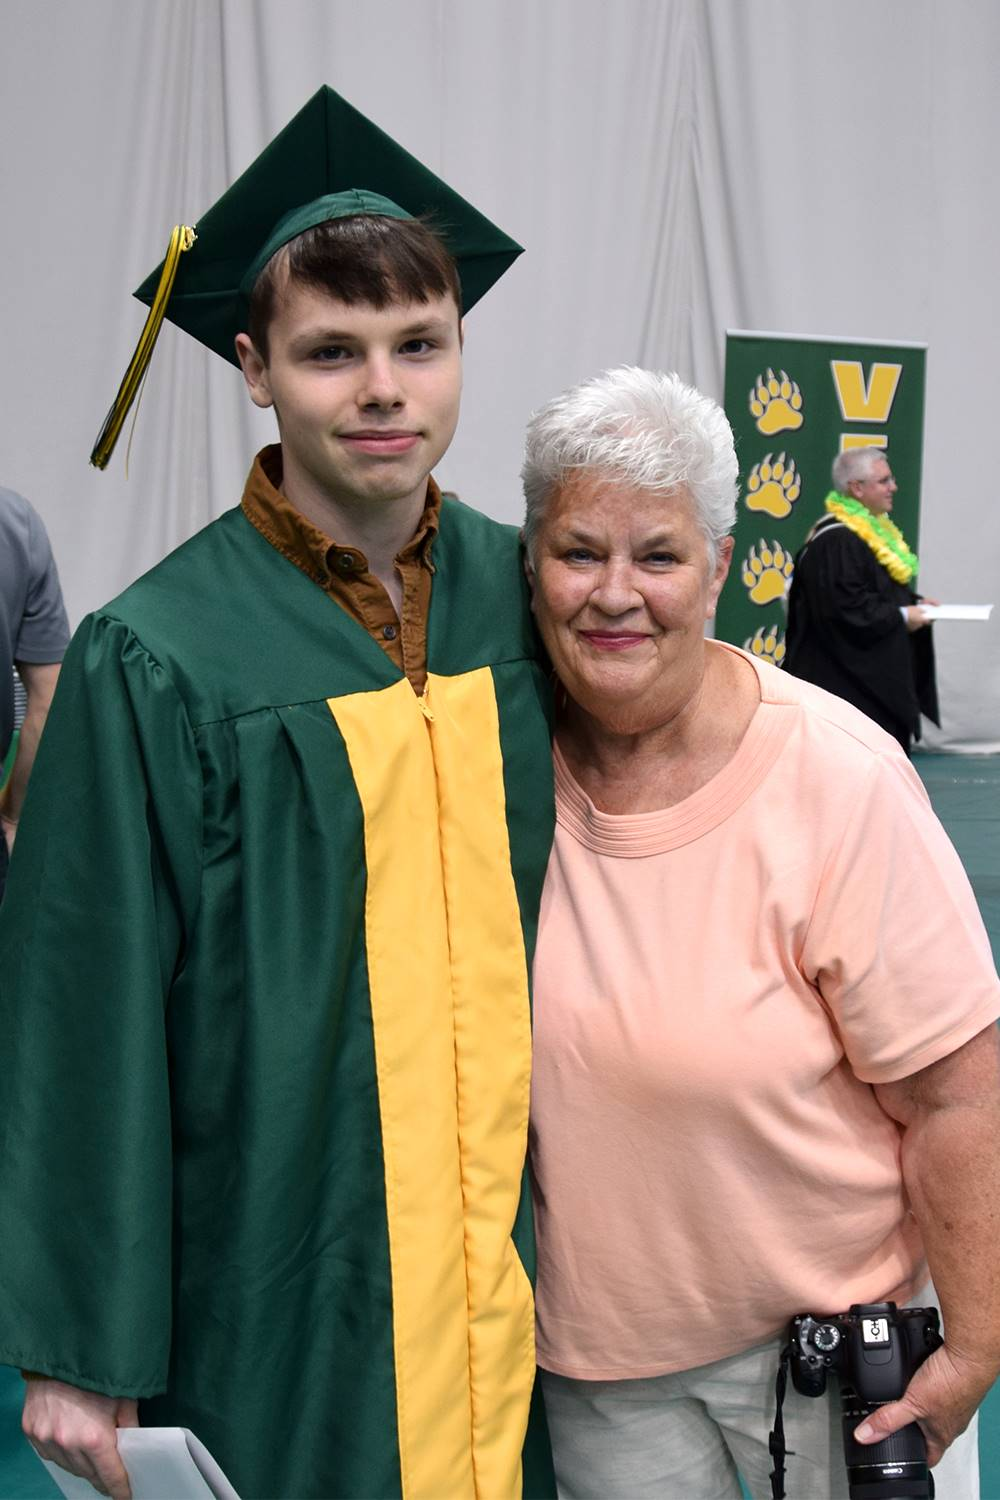 A Vestal High School graduate stands next to his grandmother after receiving his diploma.